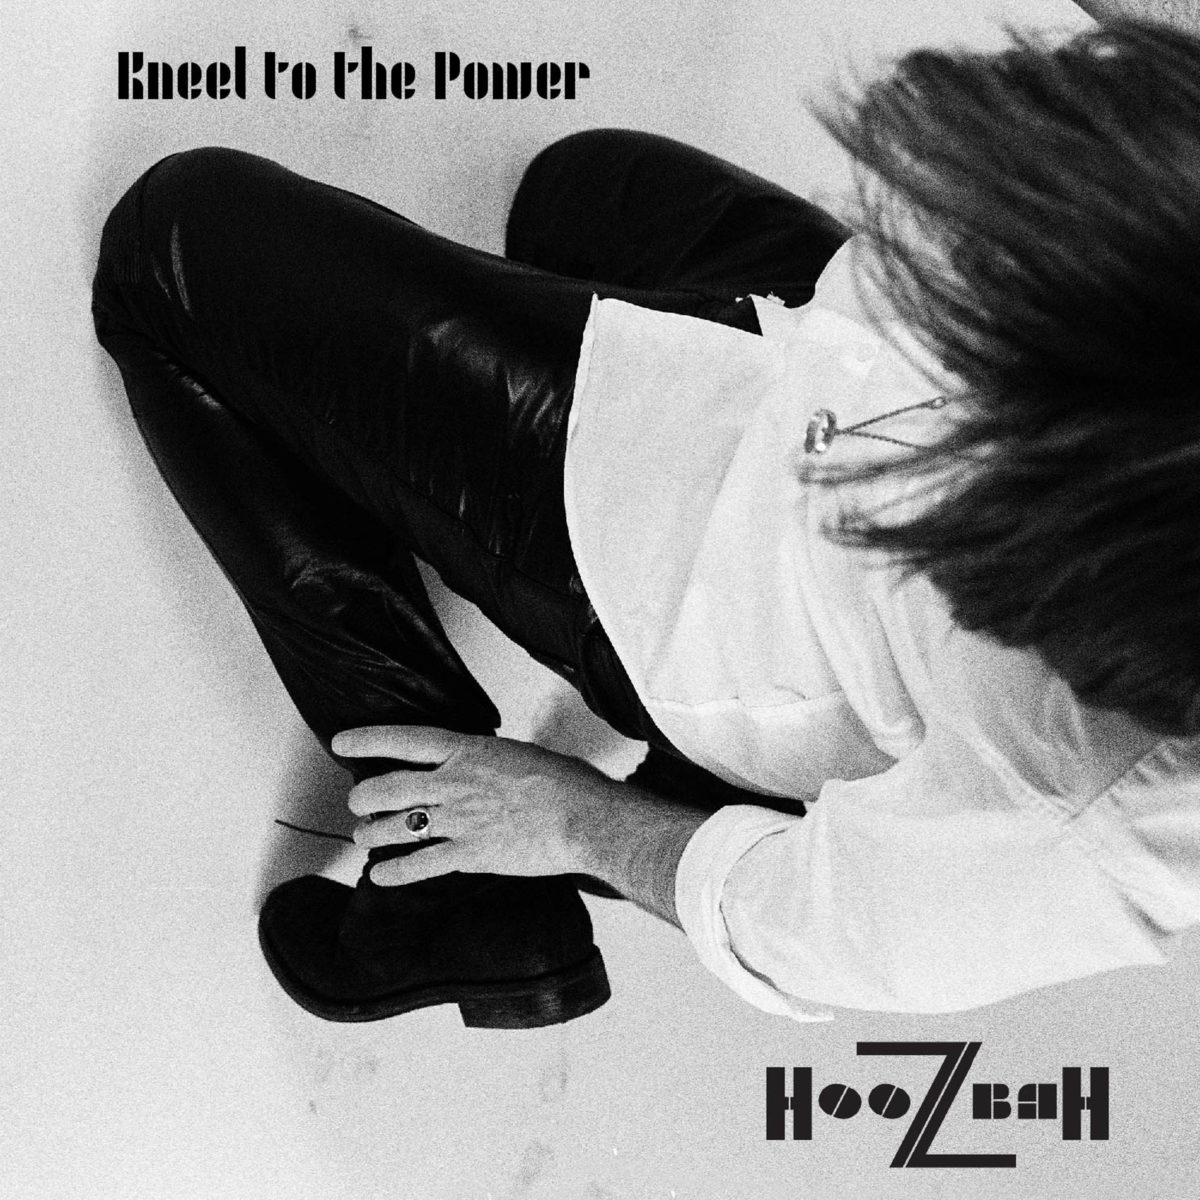 Hoozbah – 'Kneel to the Power'